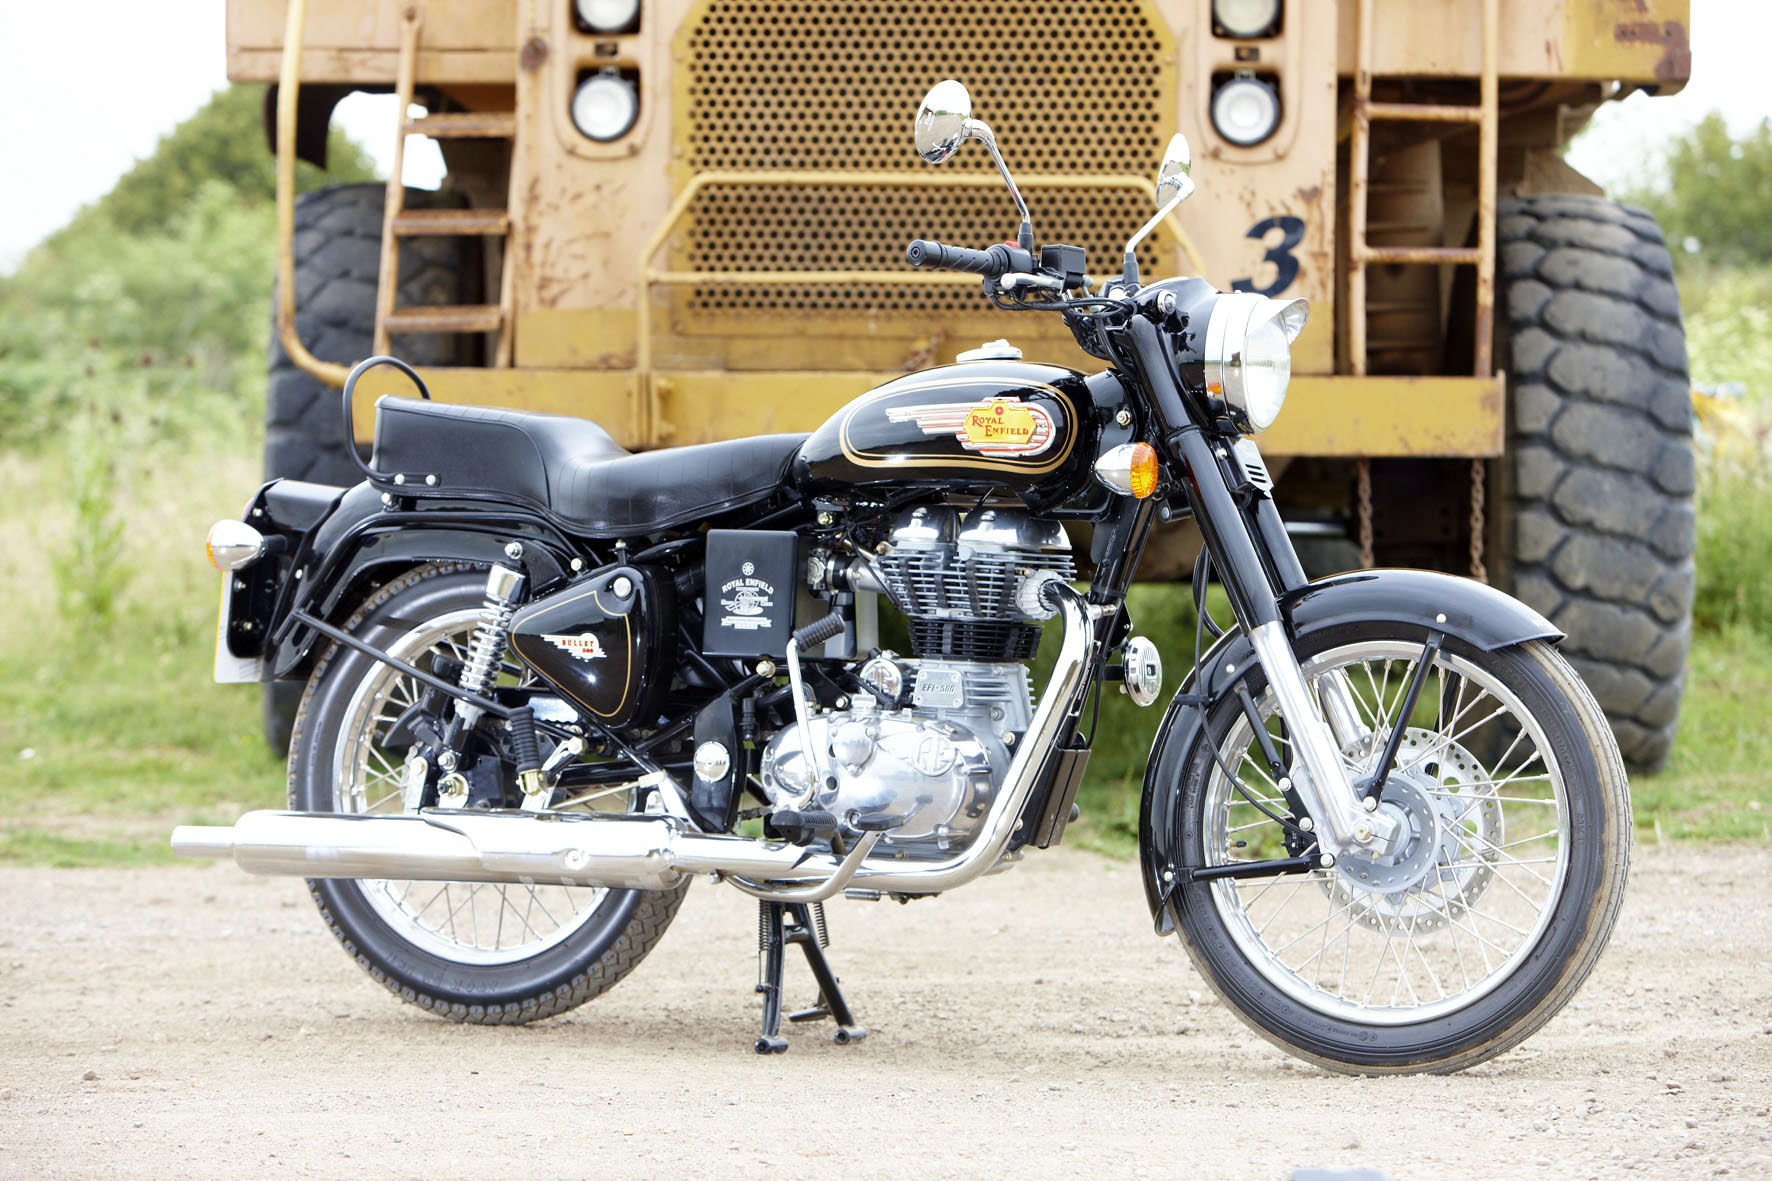 Royal Enfield Bullet 500 Trial Trail 2009 images #127406